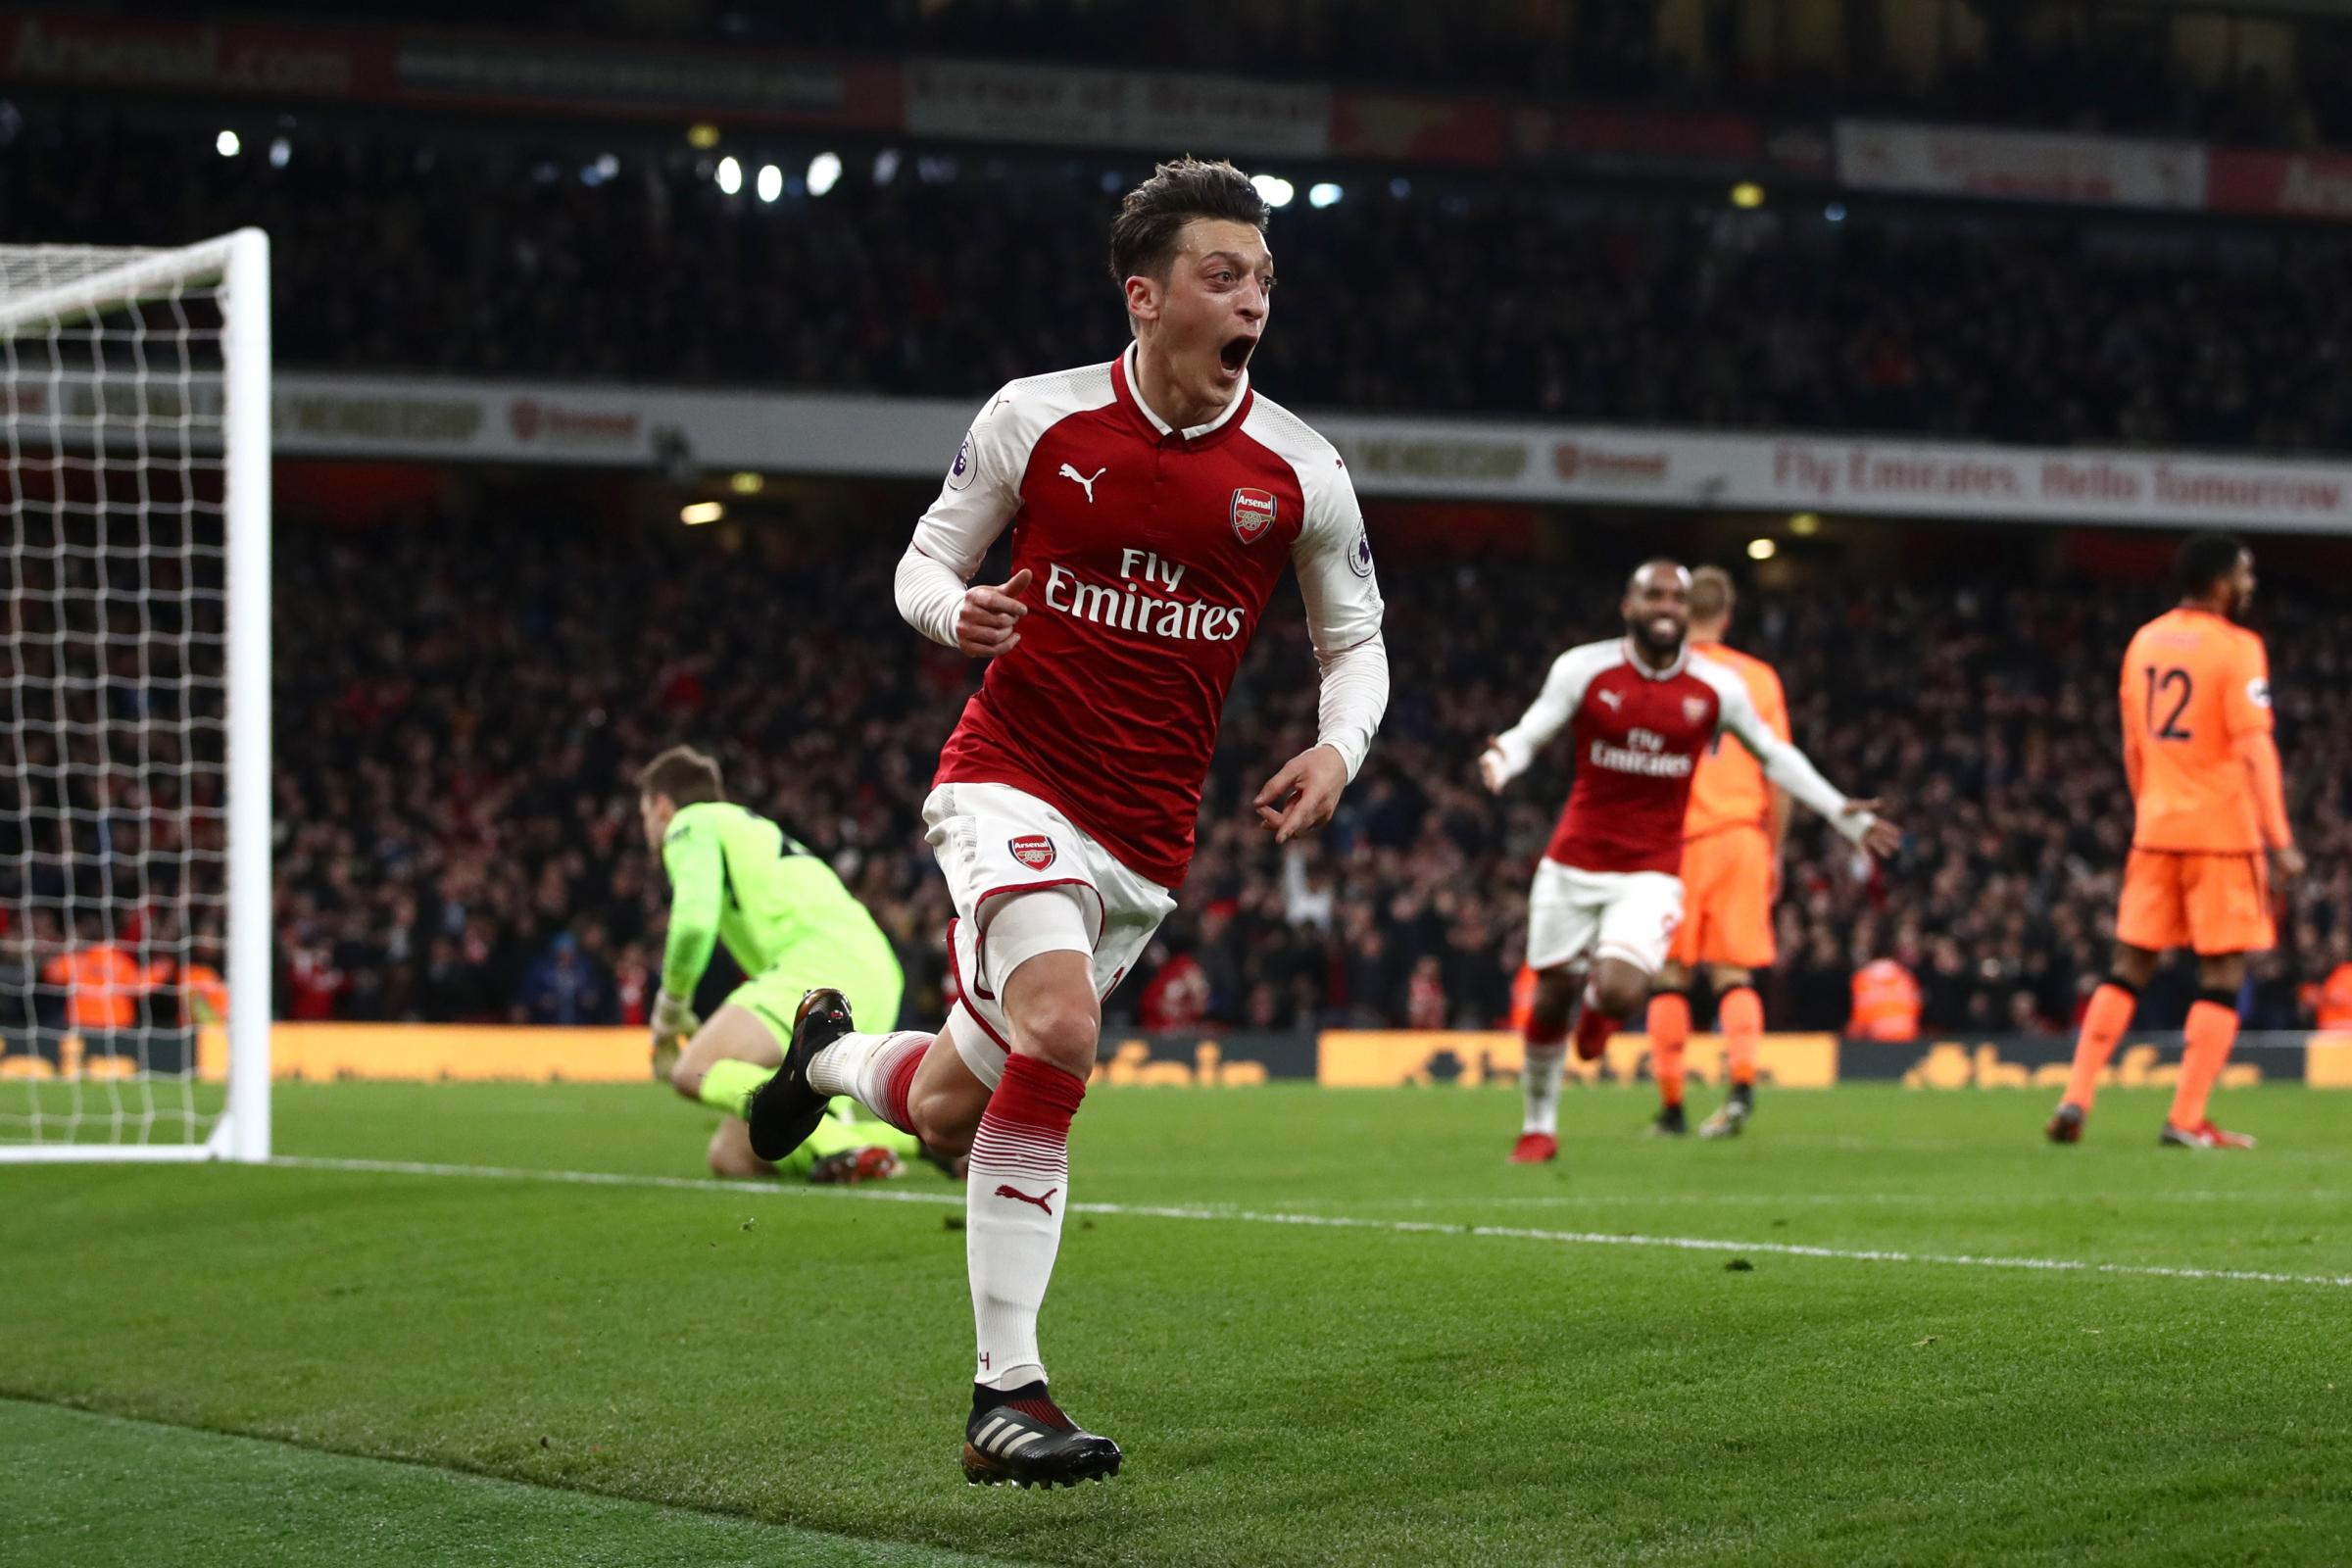 Arsenal's Mesut Ozil celebrates scoring his side's third goal of the game during the Premier League match at the Emirates Stadium, London. PRESS ASSOCIATION Photo. Picture date: Friday December 22, 2017. See PA story SOCCER Arsenal. Photo credit shoul